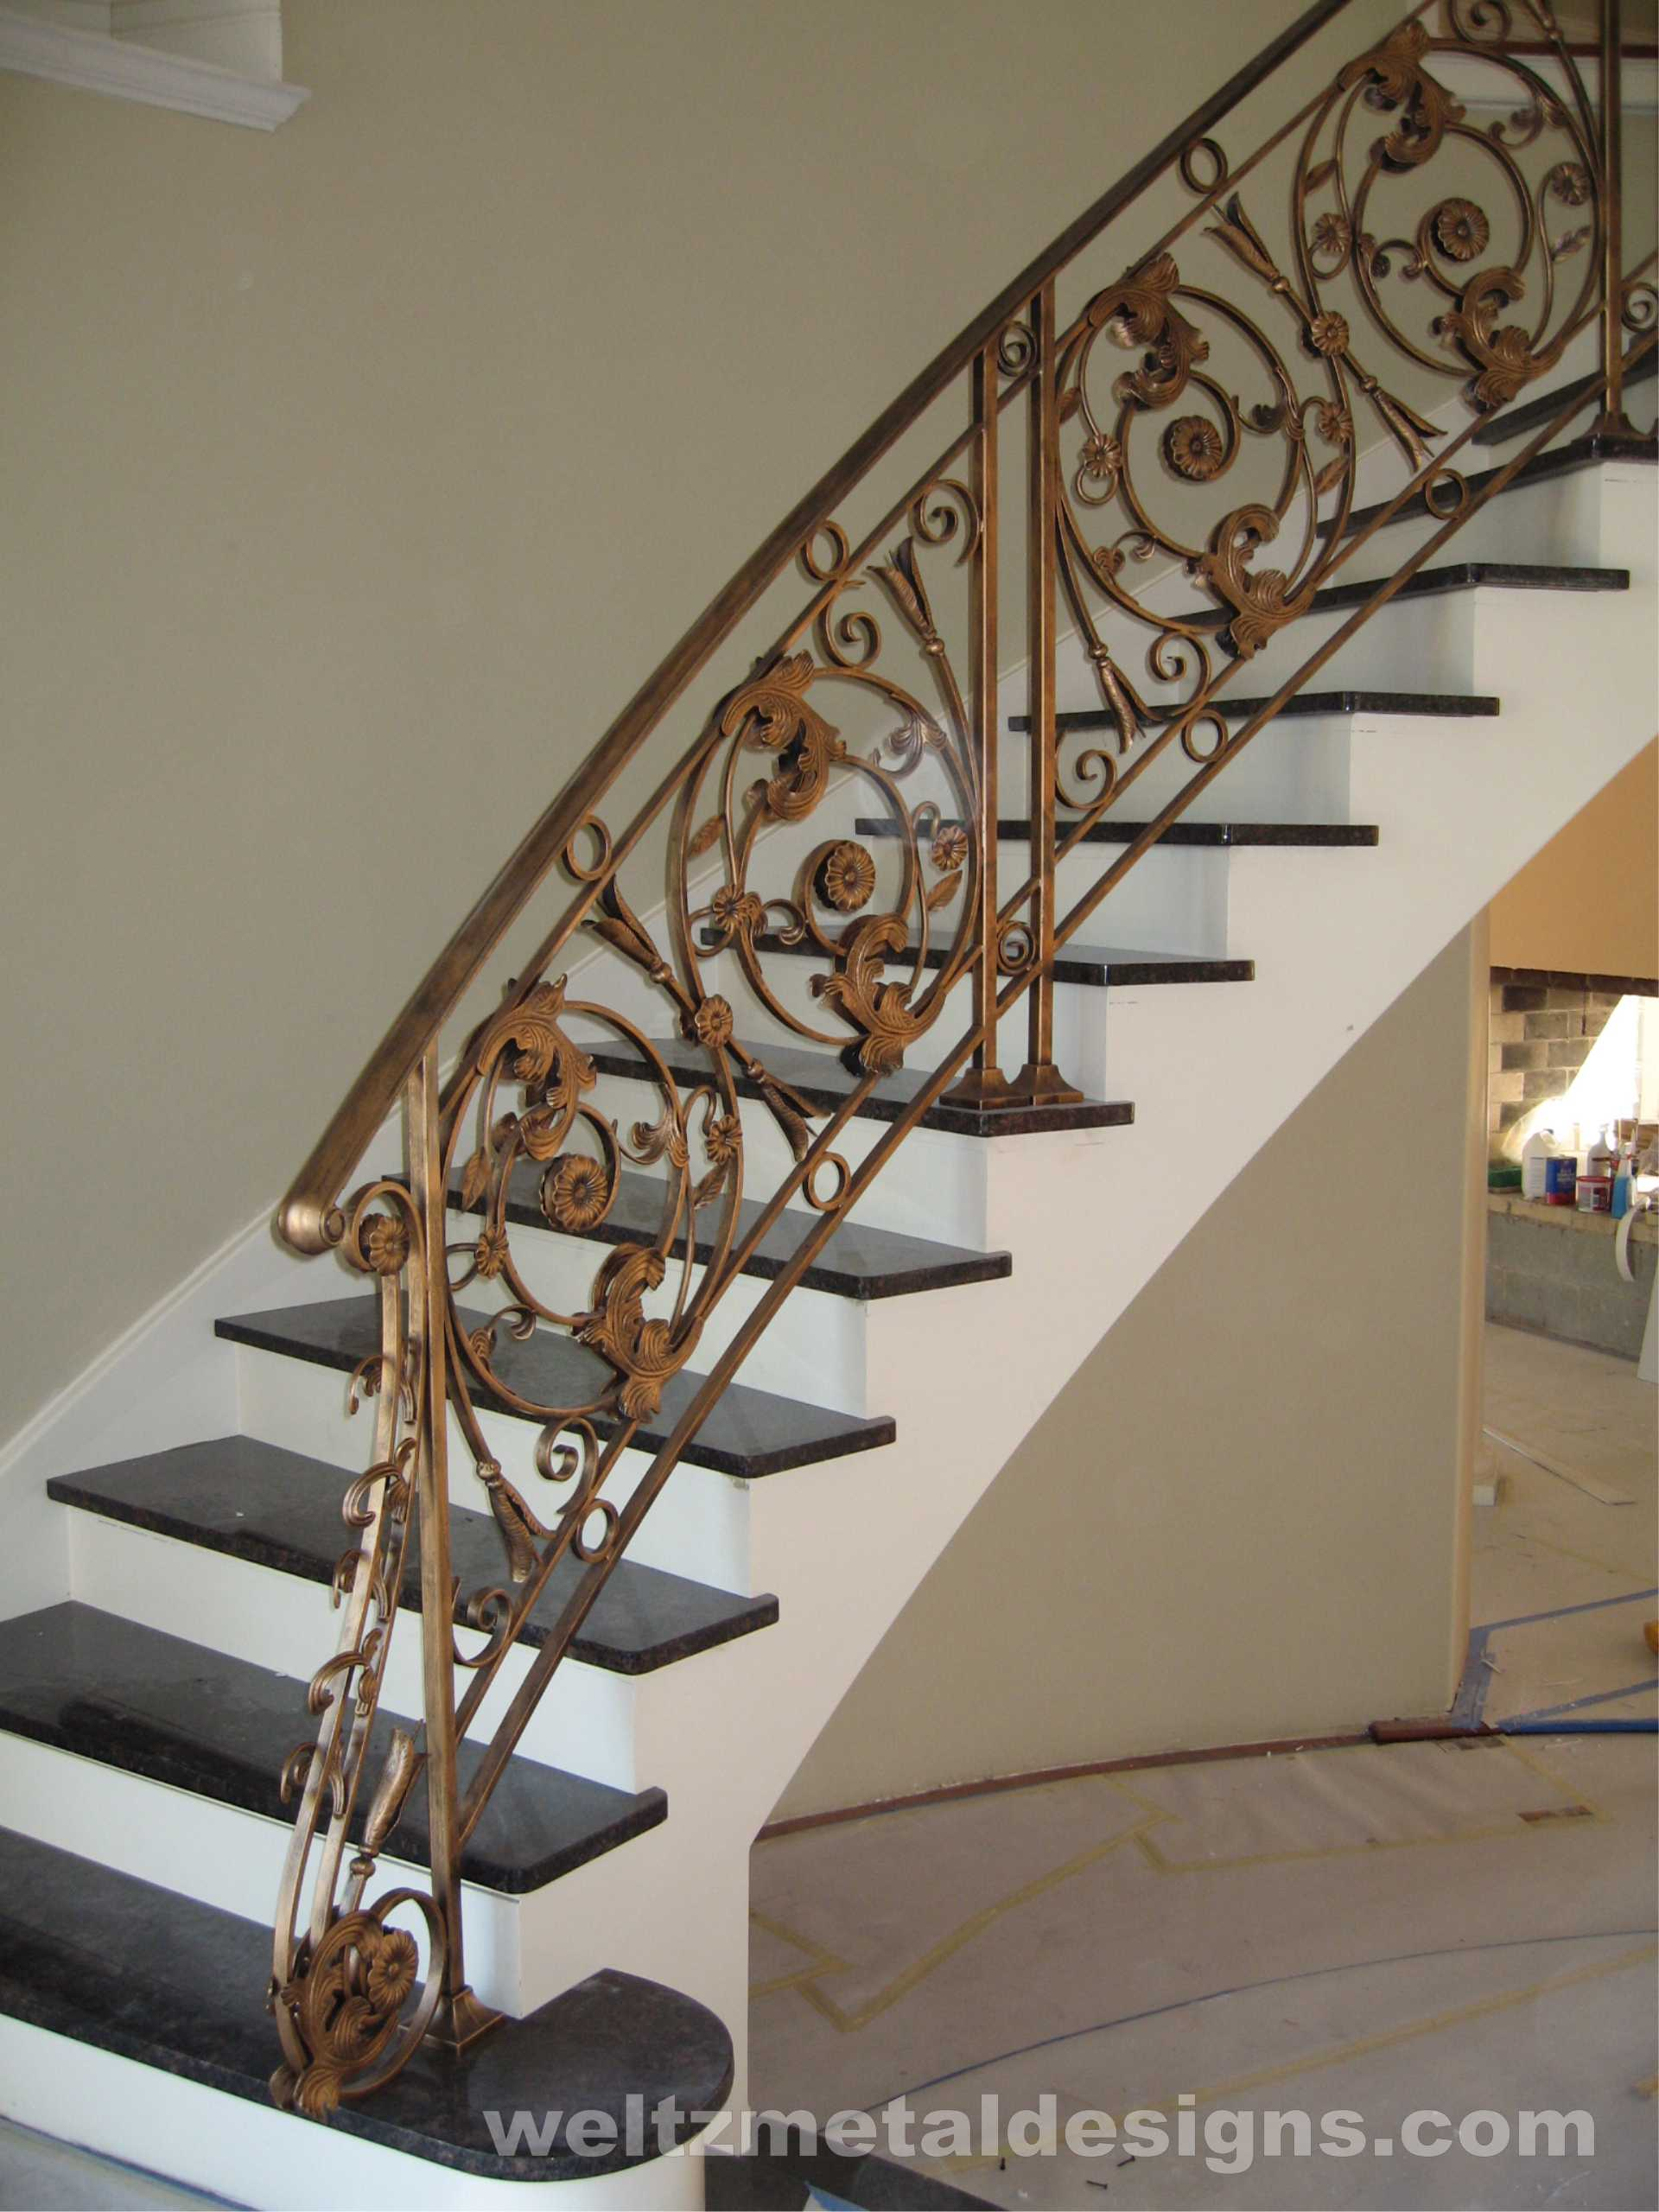 Interior Stairs Railings and Guardrails, Ornamental Style